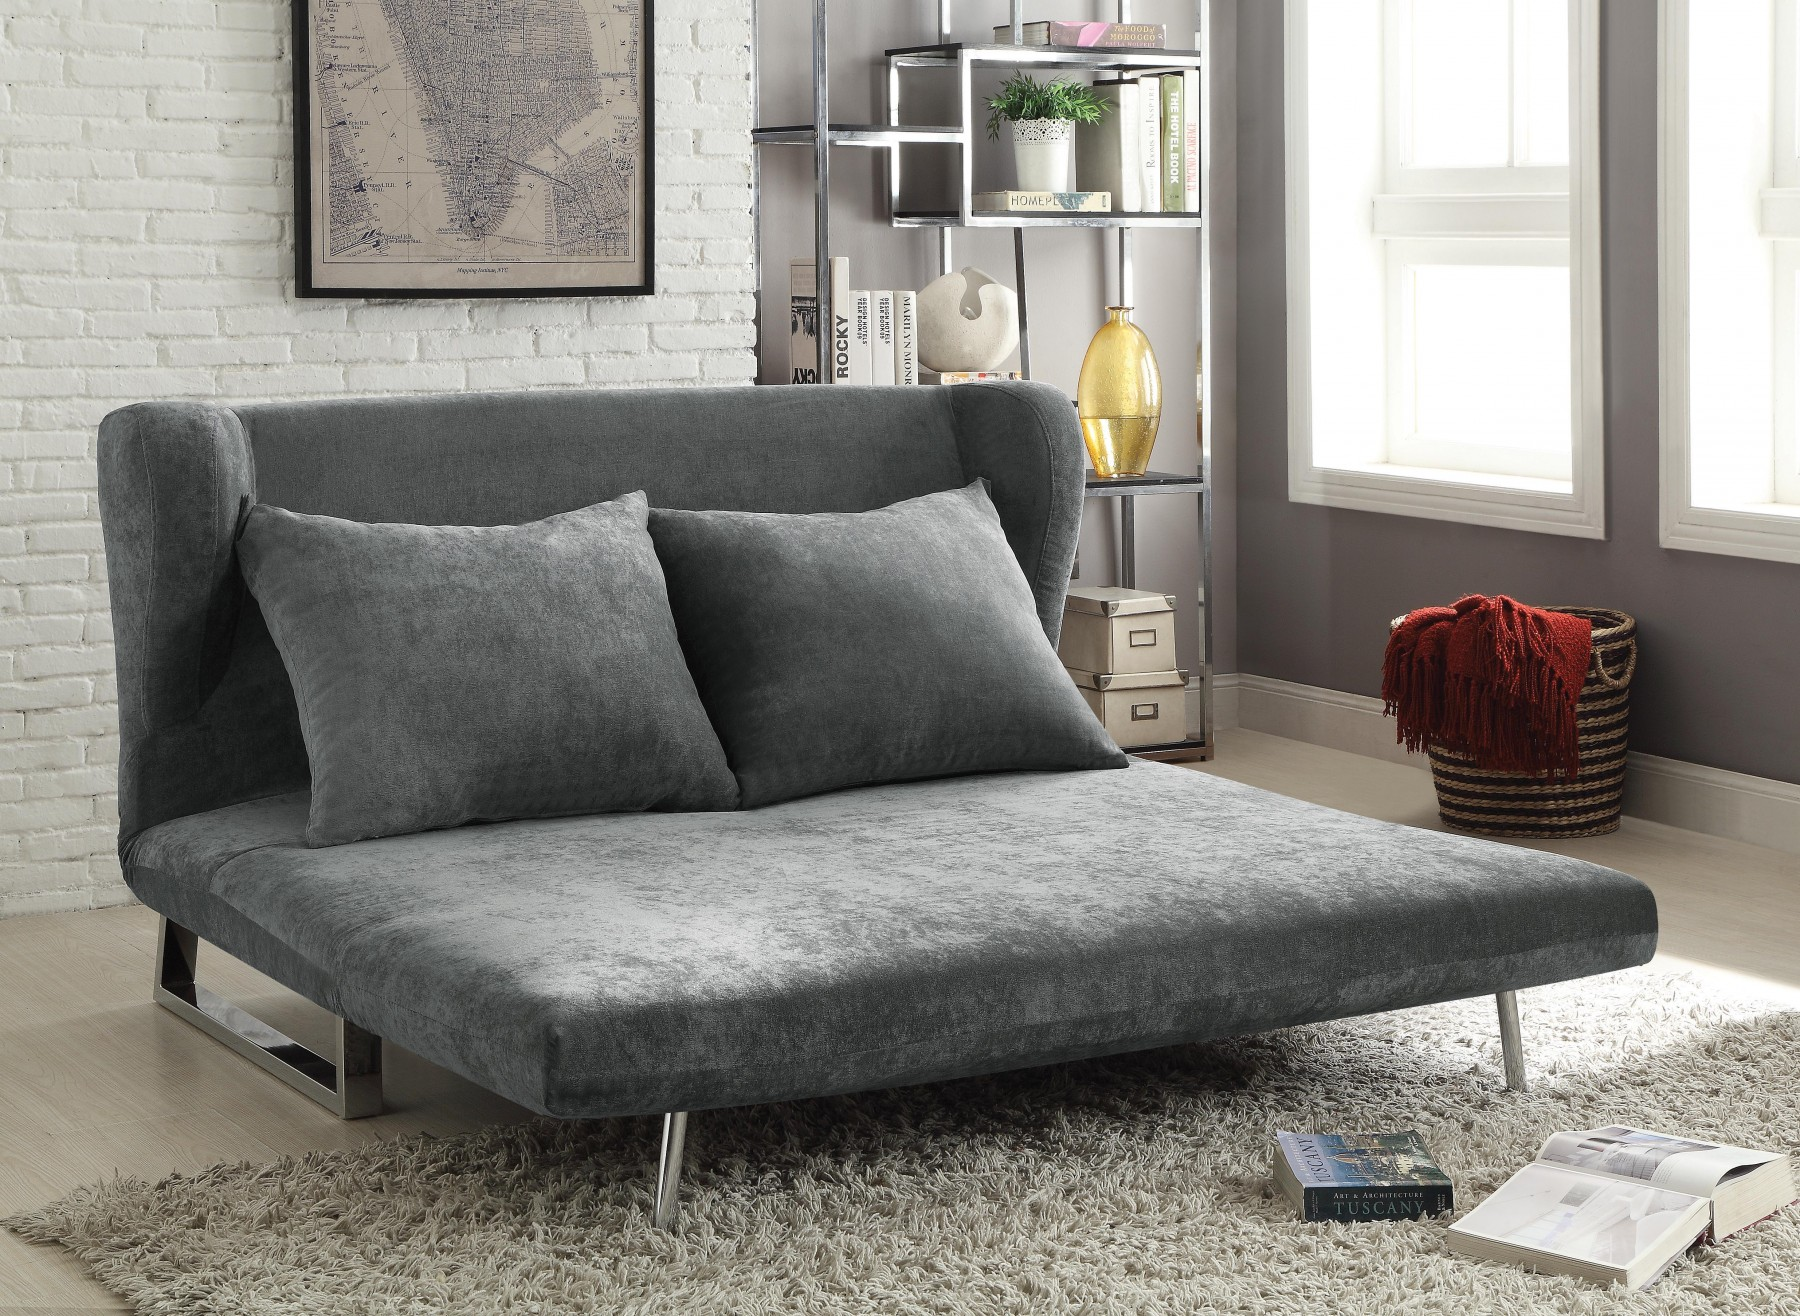 Grey Sofa In Lounge Contemporary Grey Sofa Bed Converts From Sofa To Chaise Lounge